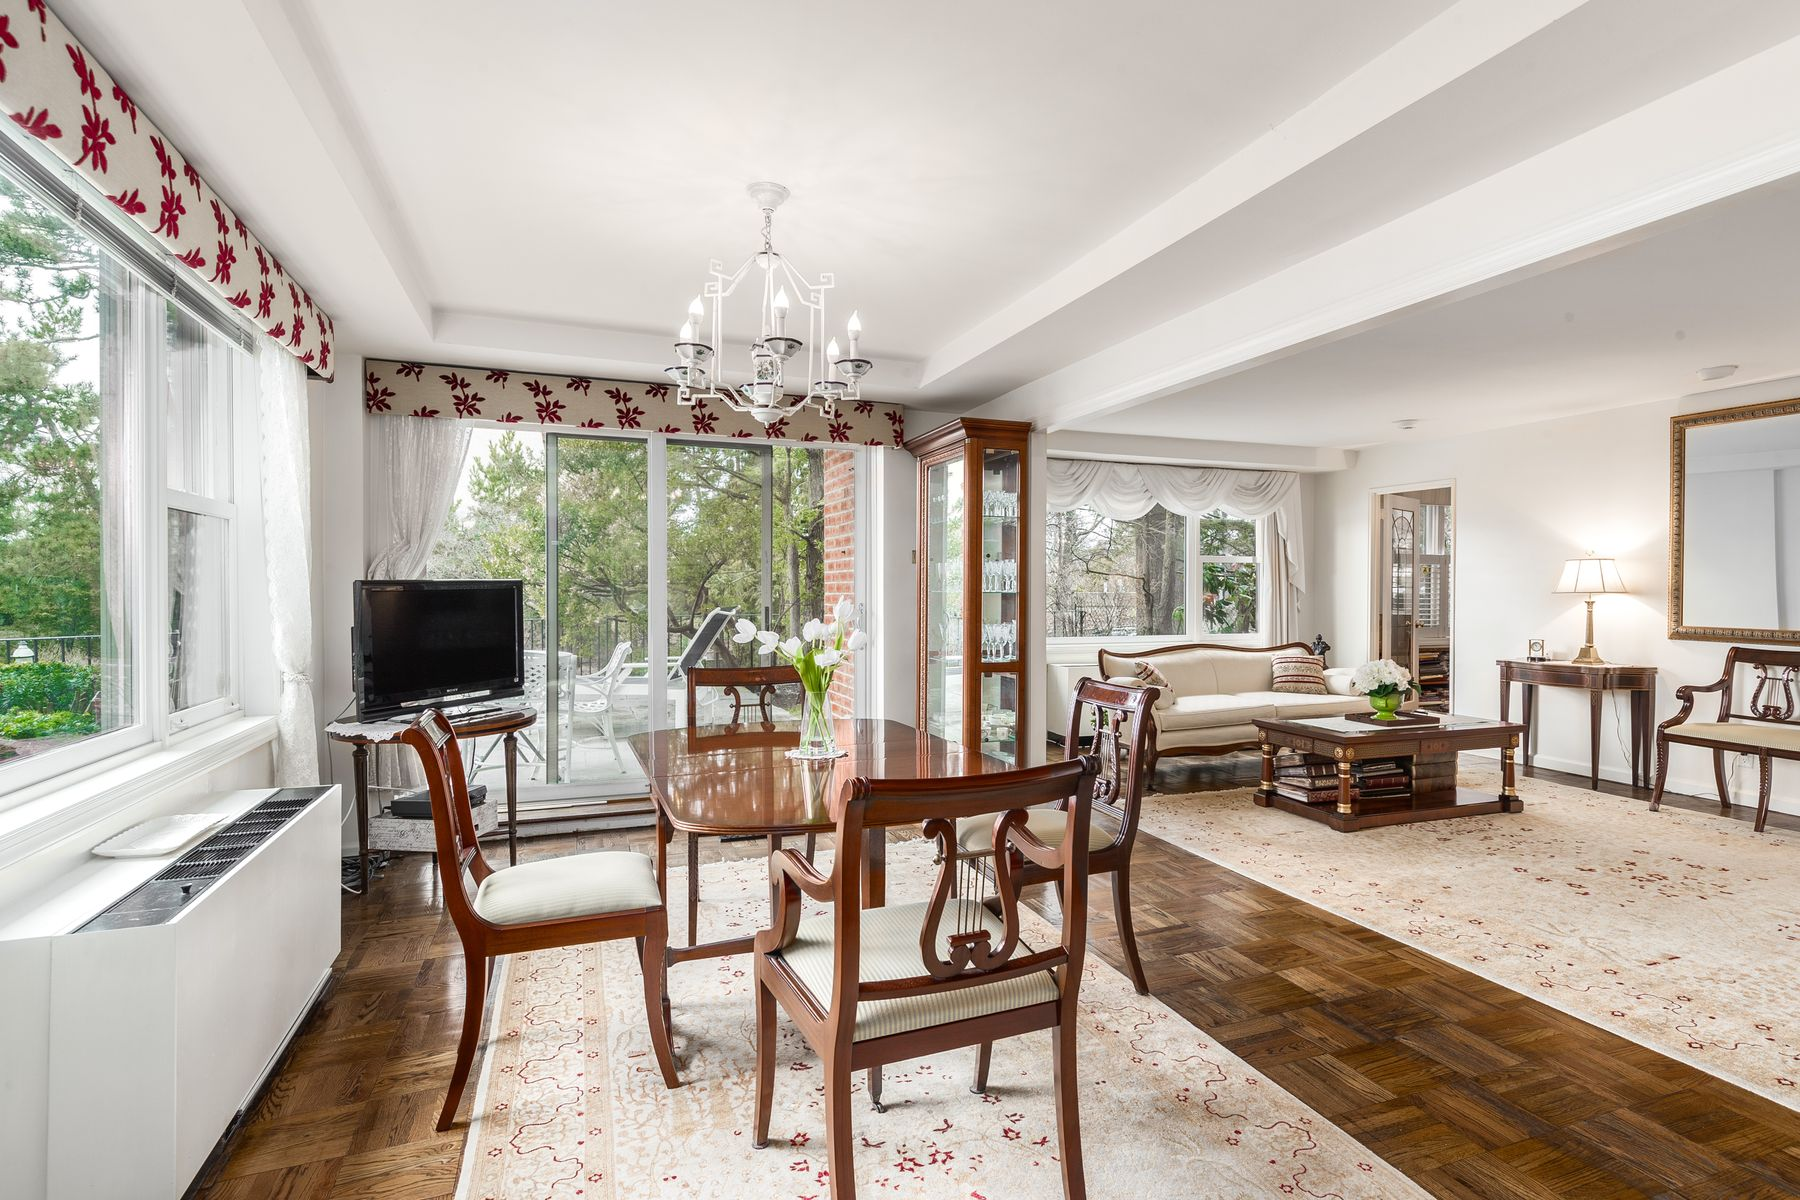 Property for Sale at Indian Harbor House 630 Steamboat Road Unit 1D Greenwich, Connecticut 06830 United States